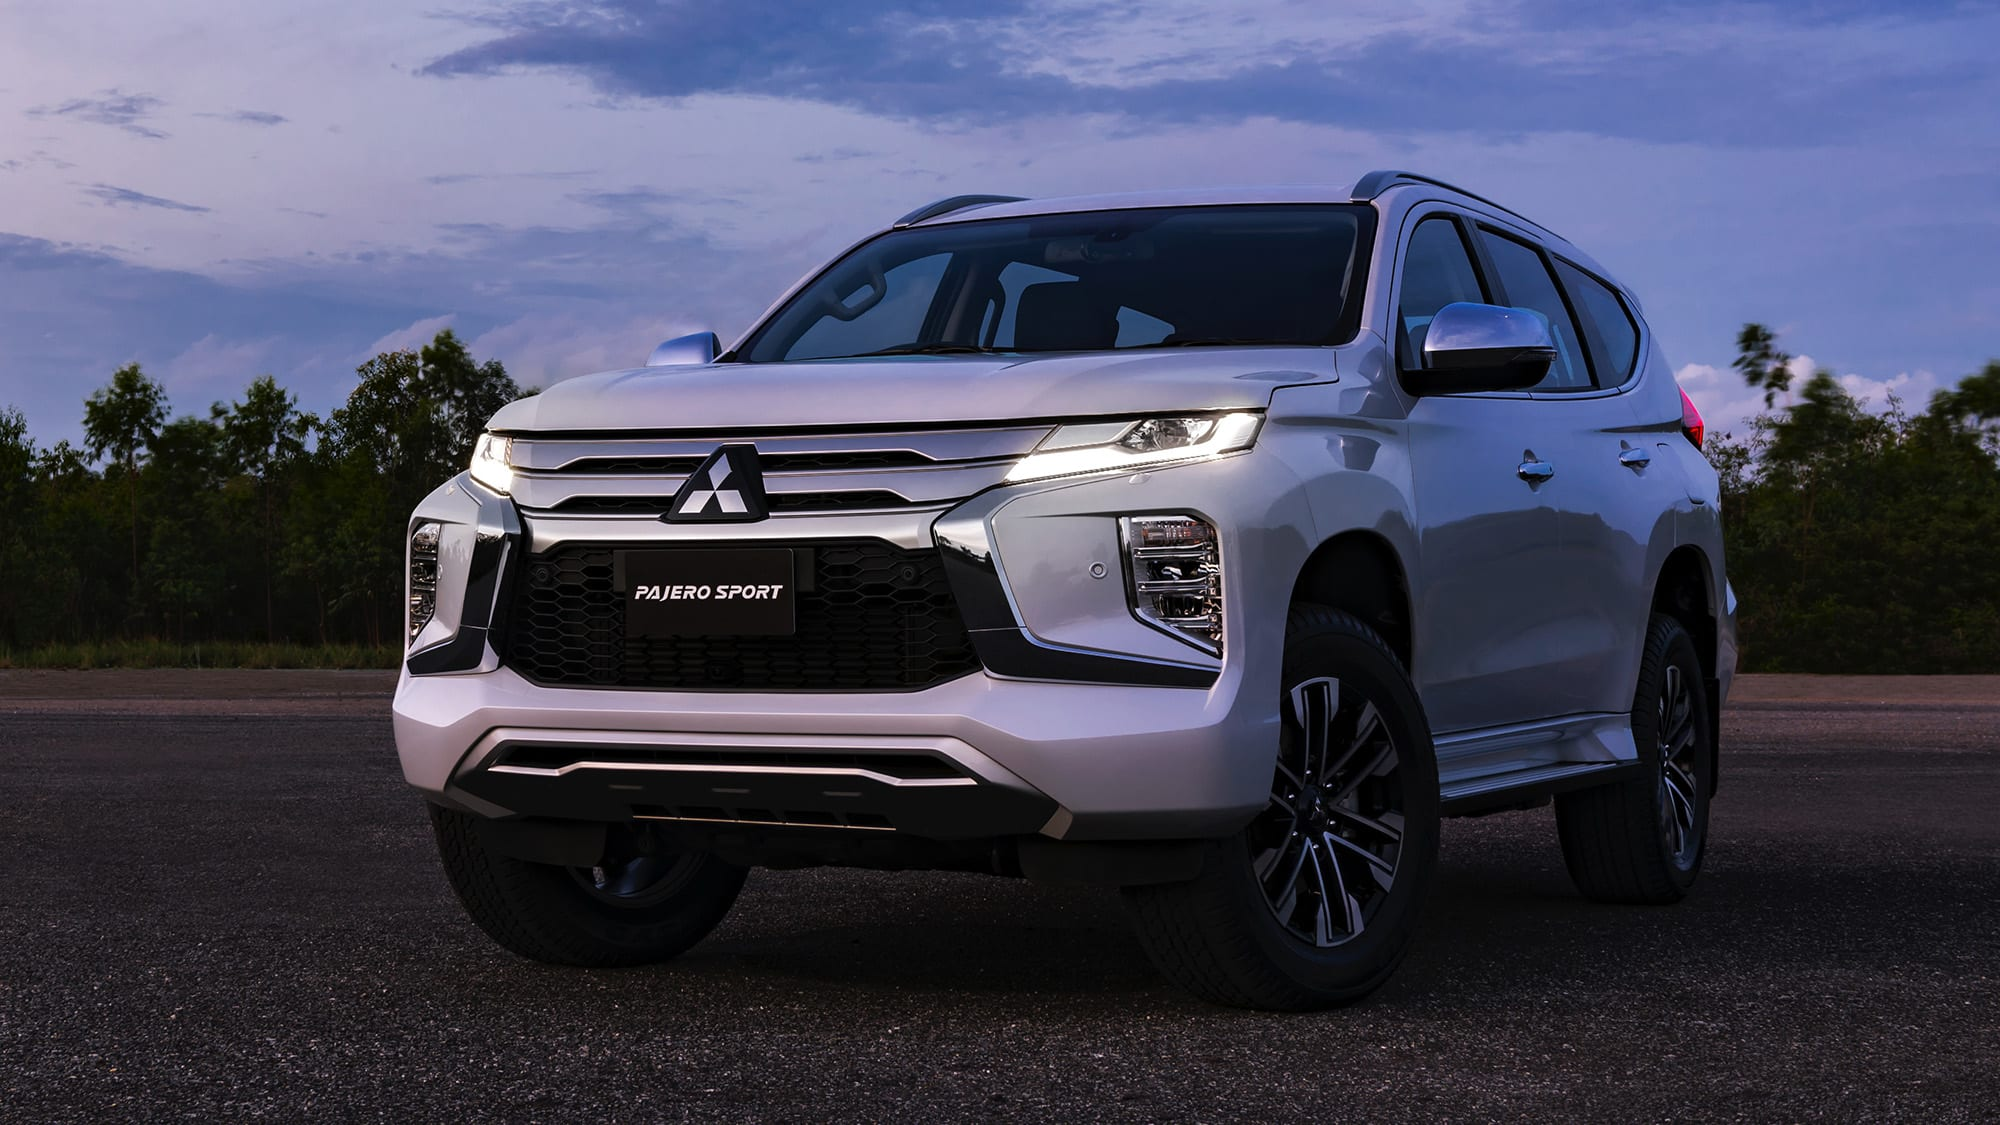 2020 All Mitsubishi Pajero Review